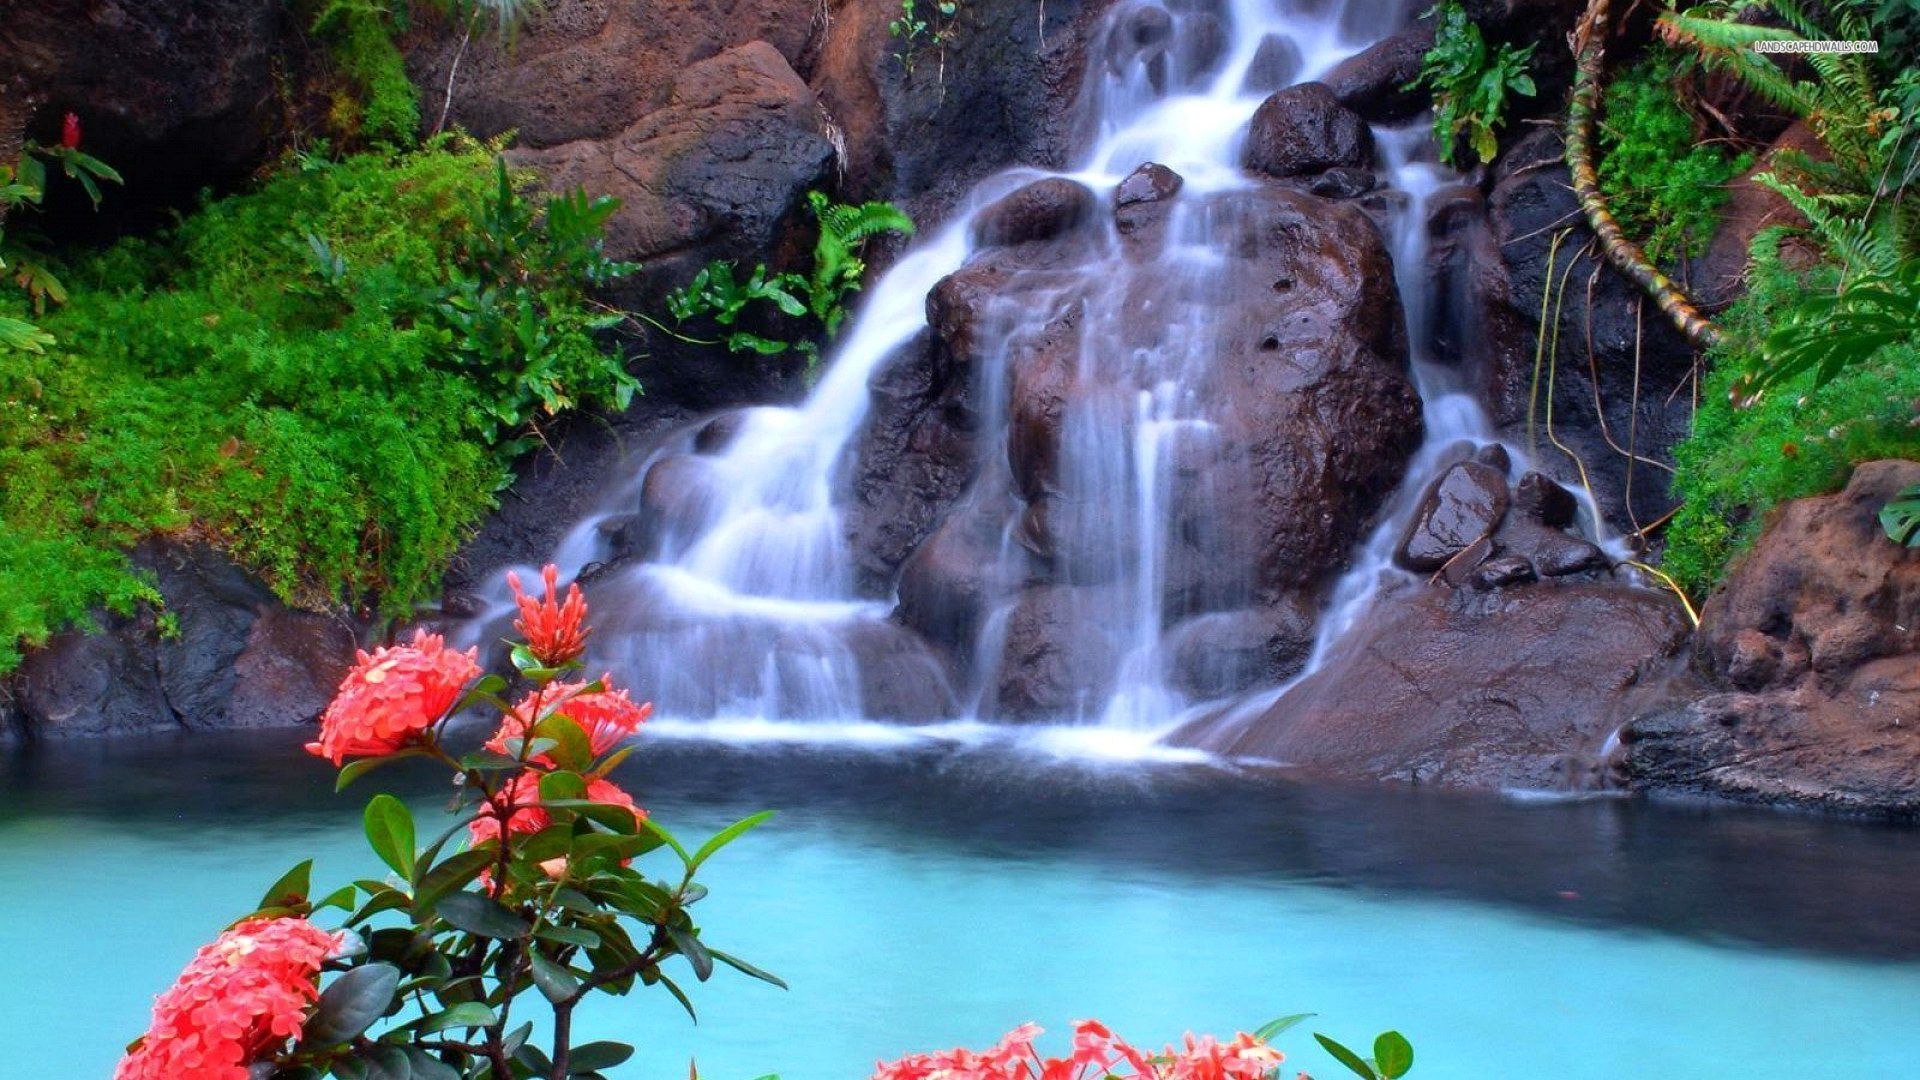 Beautiful Waterfall Photo Hd Wallpapers Free Beautiful Waterfalls Waterfall Pictures Waterfall Photo